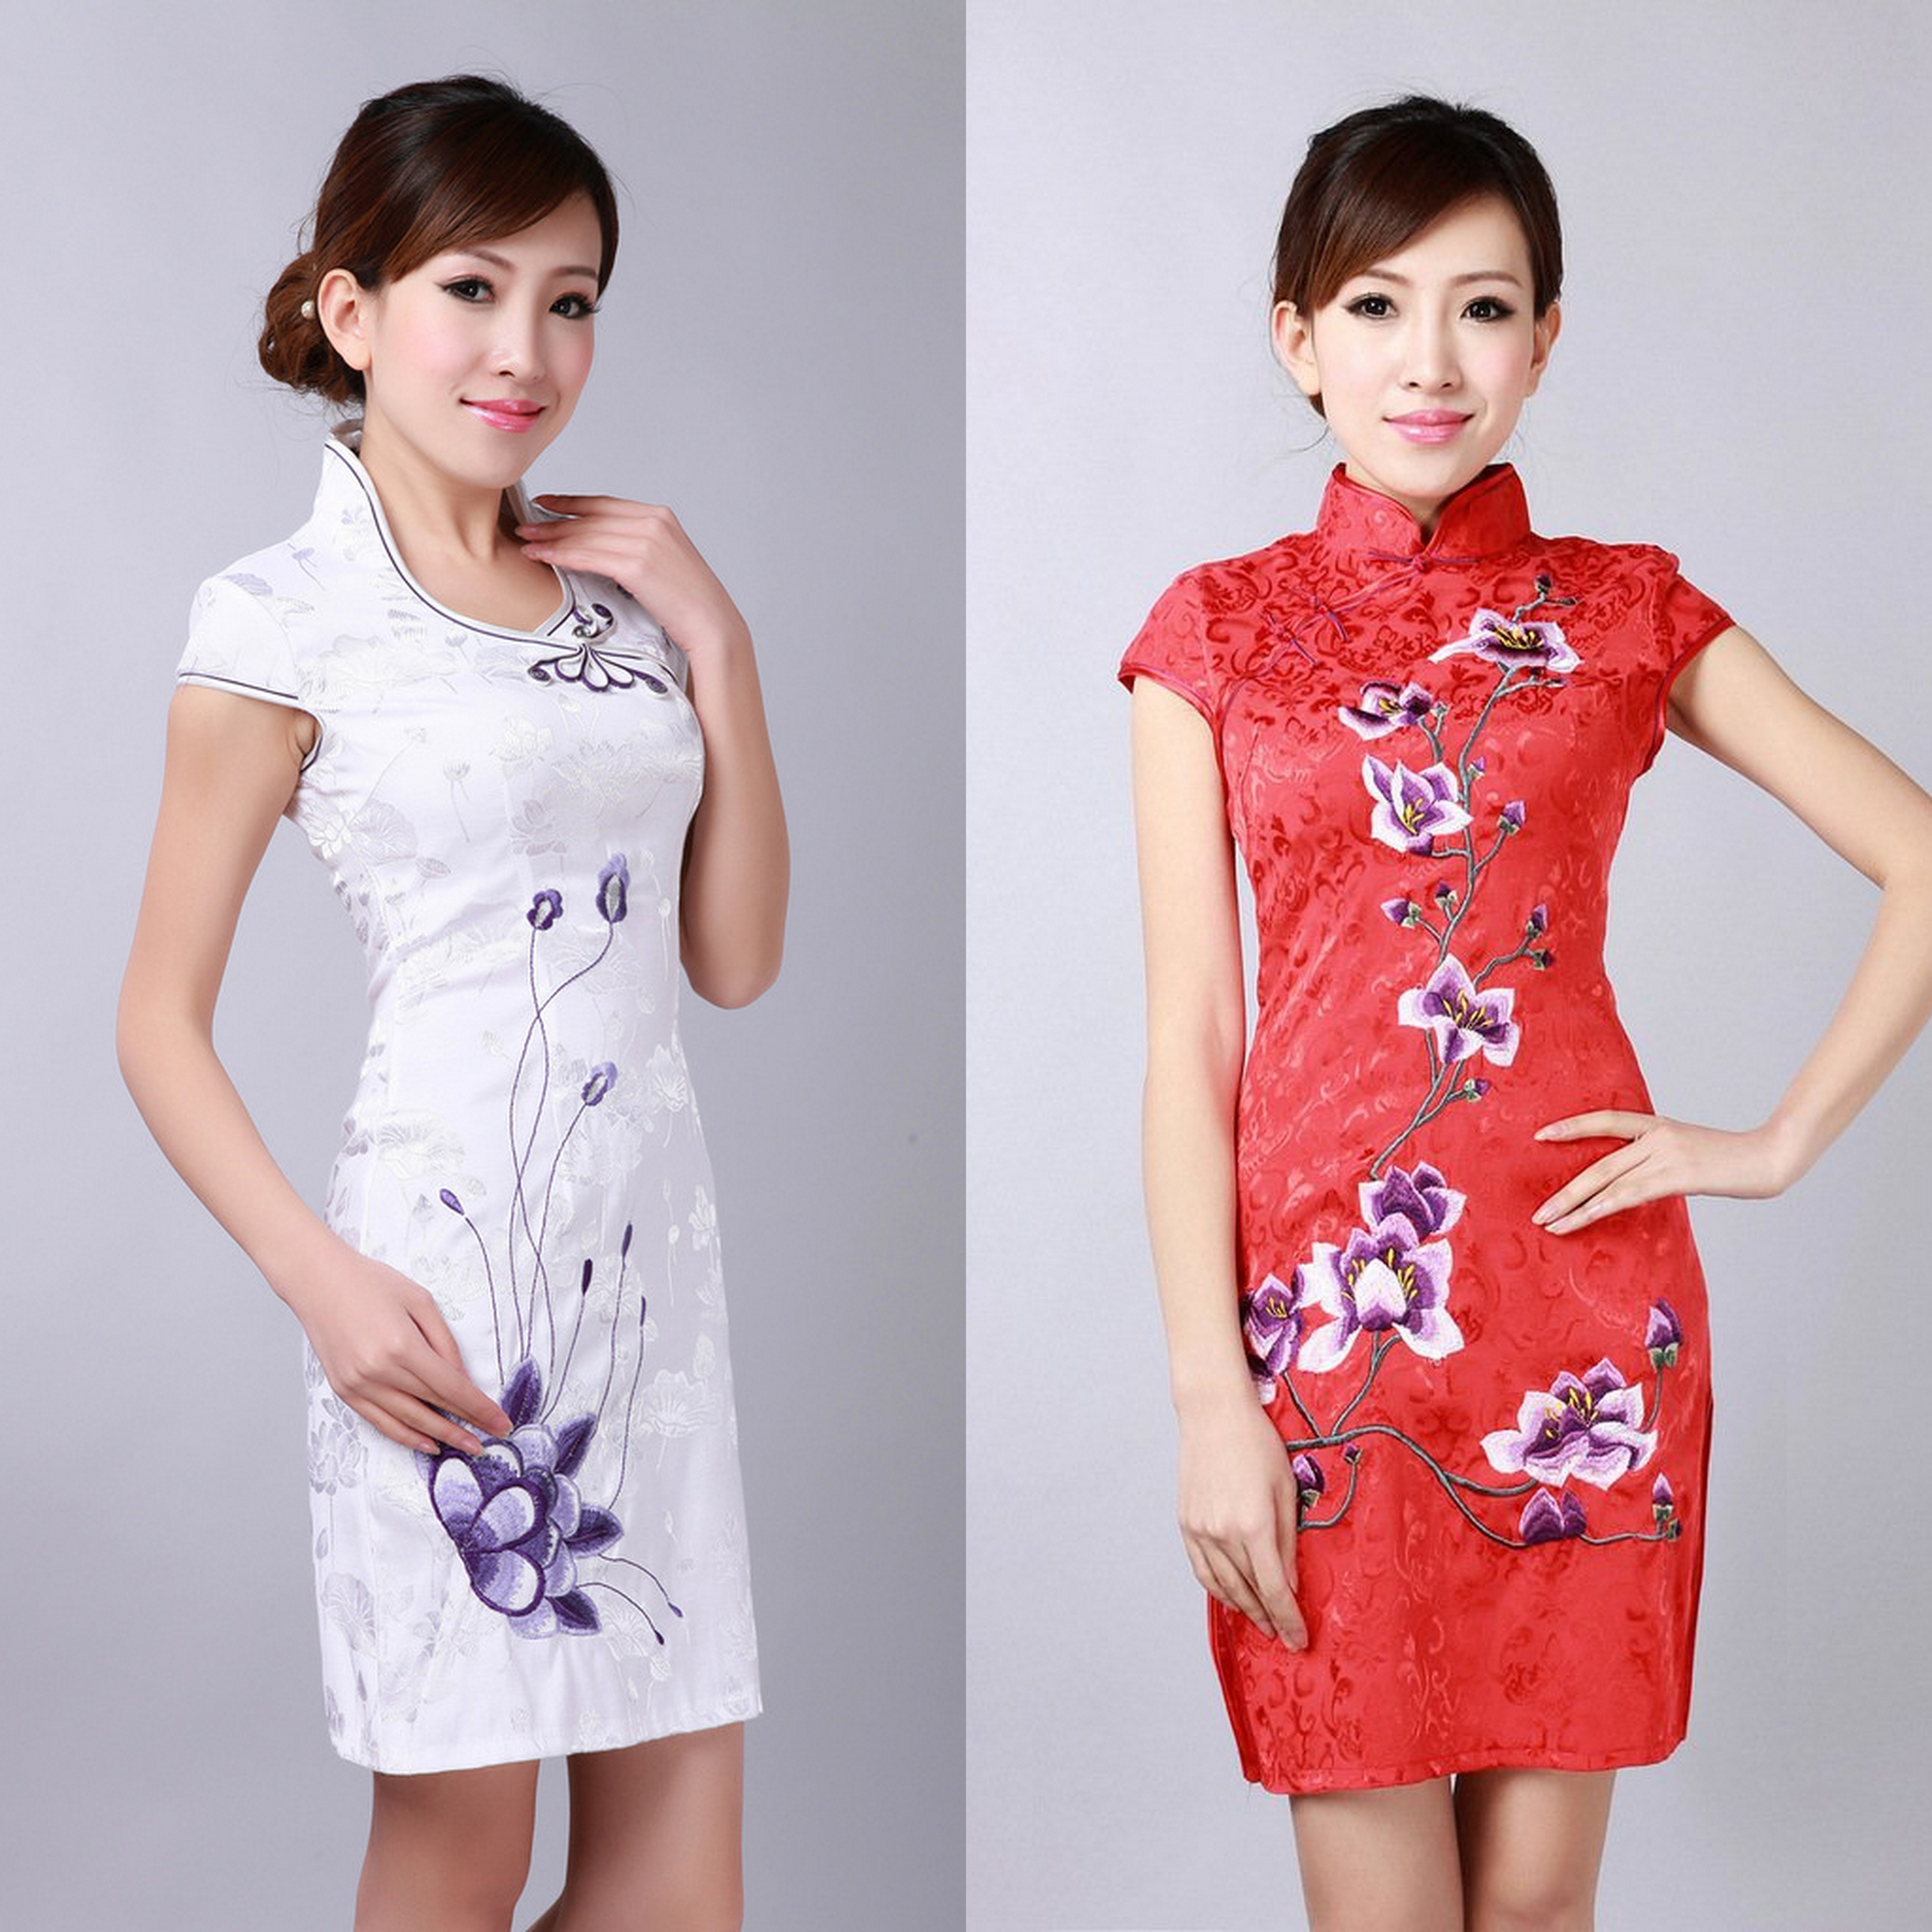 qoo10 flat price chinese new year cheongsam classic women party dress s women s clothing. Black Bedroom Furniture Sets. Home Design Ideas